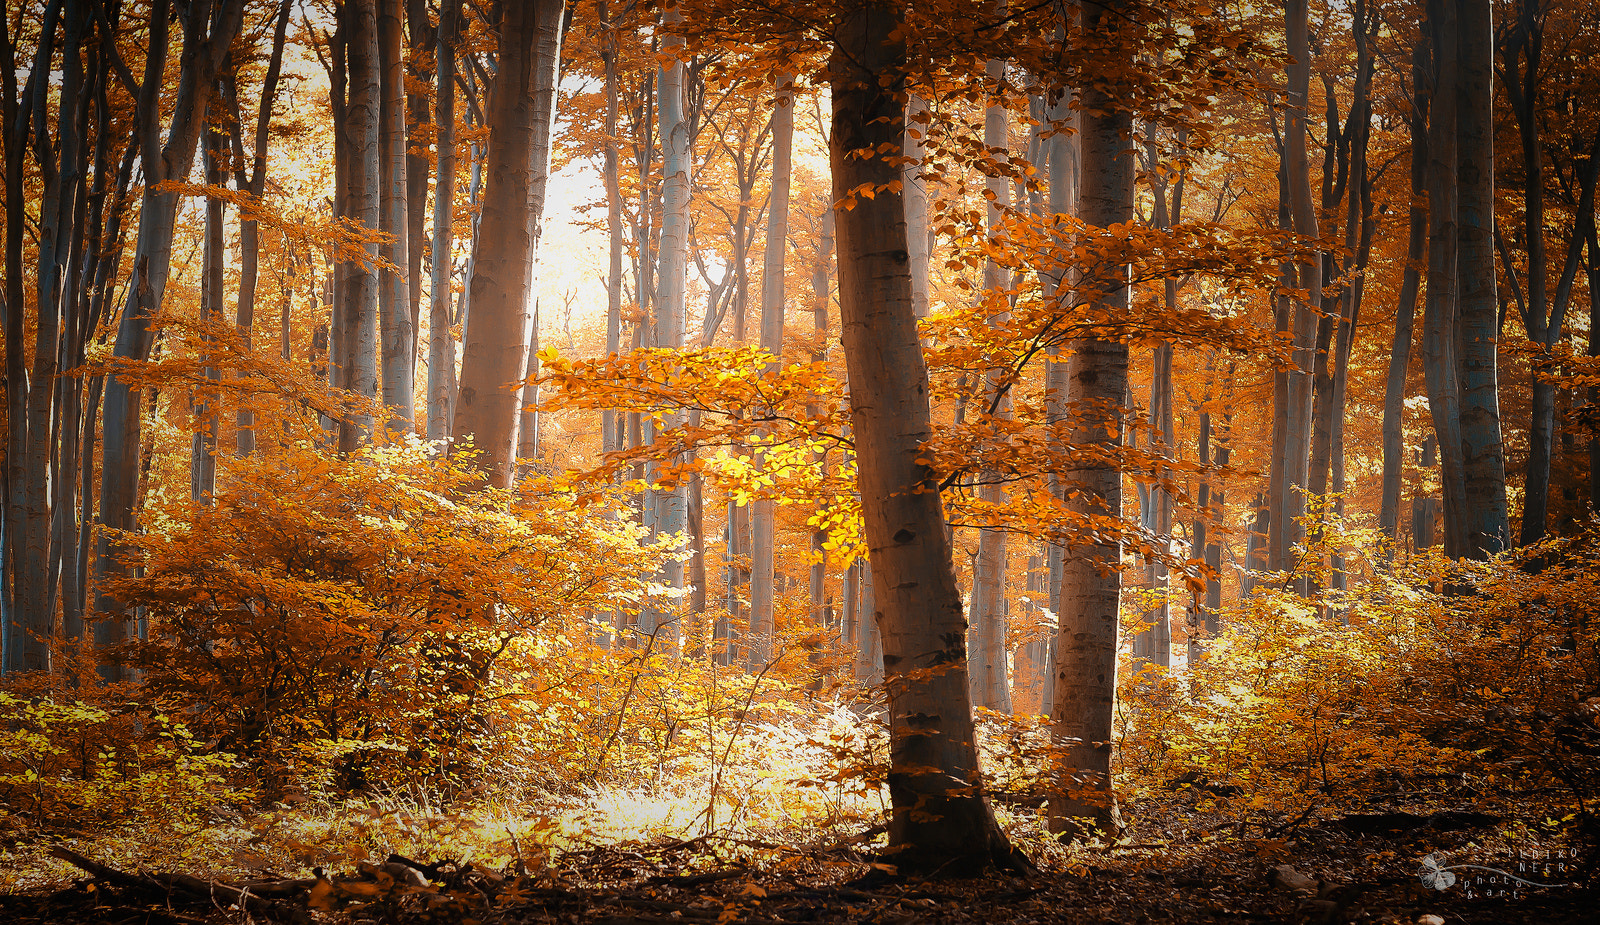 Photograph Shine Like Gold by Ildiko Neer on 500px